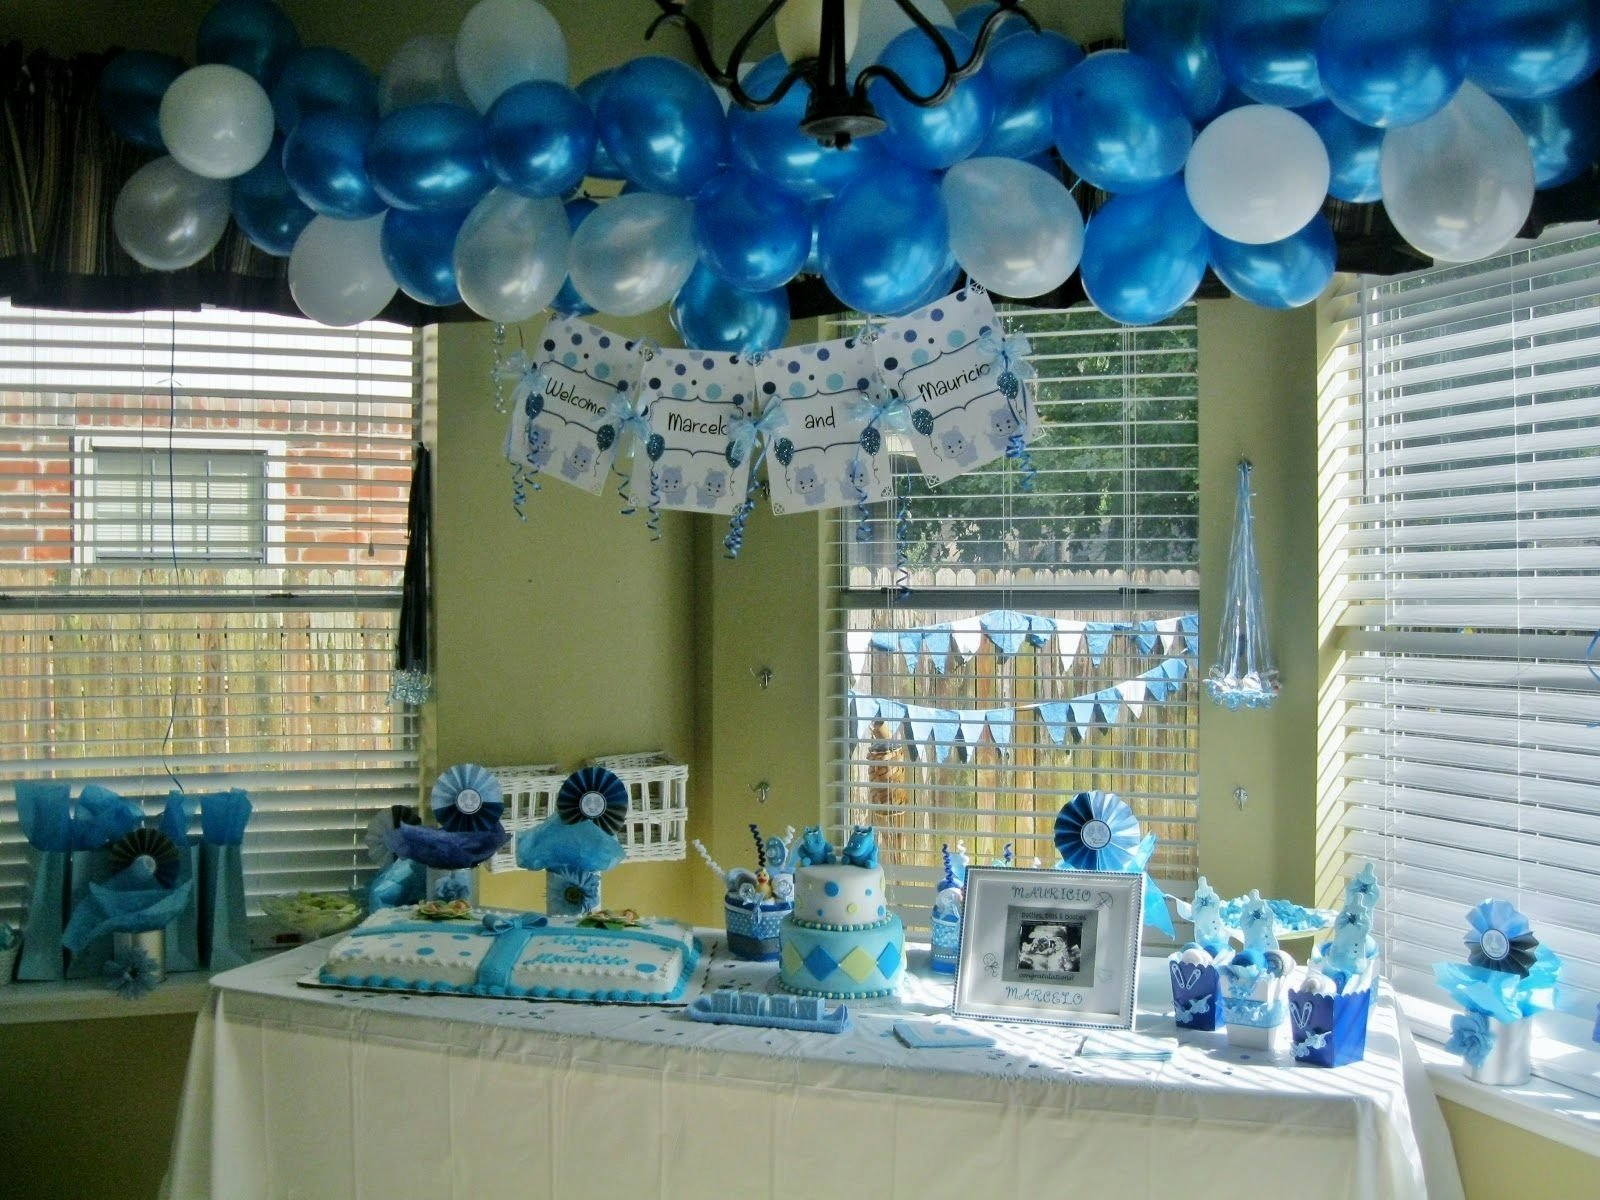 10 Fabulous Decorations For Baby Shower Ideas baby shower ideas for boys decorating of party on a budget idolza 2021